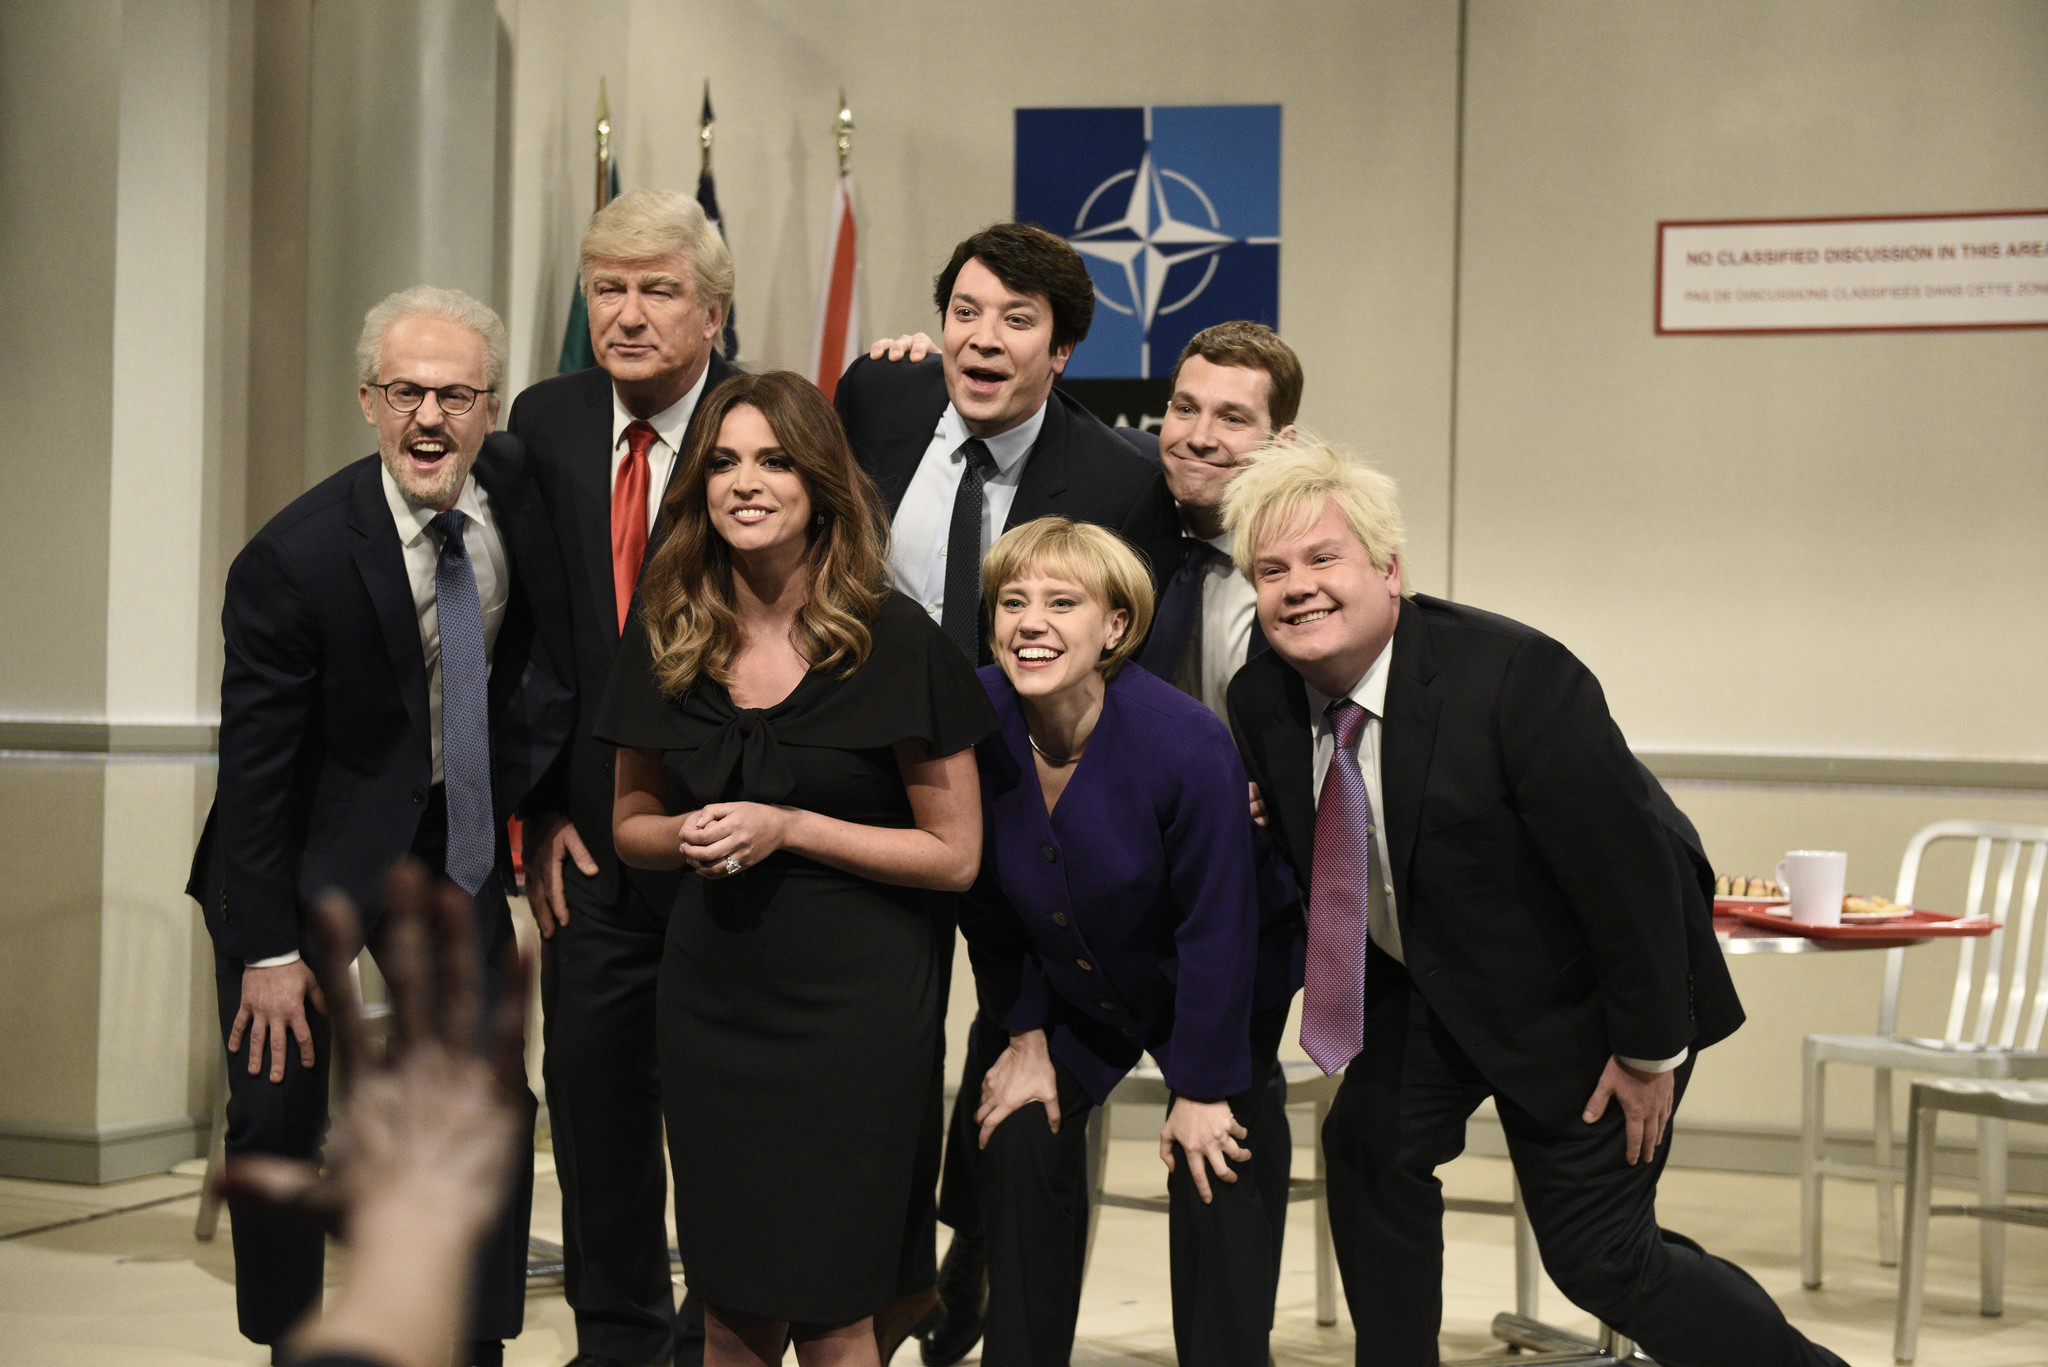 SEE IT: Jimmy Fallon, Paul Rudd and James Corden make surprise appearances on 'Saturday Night Live' in NATO cafeteria skit